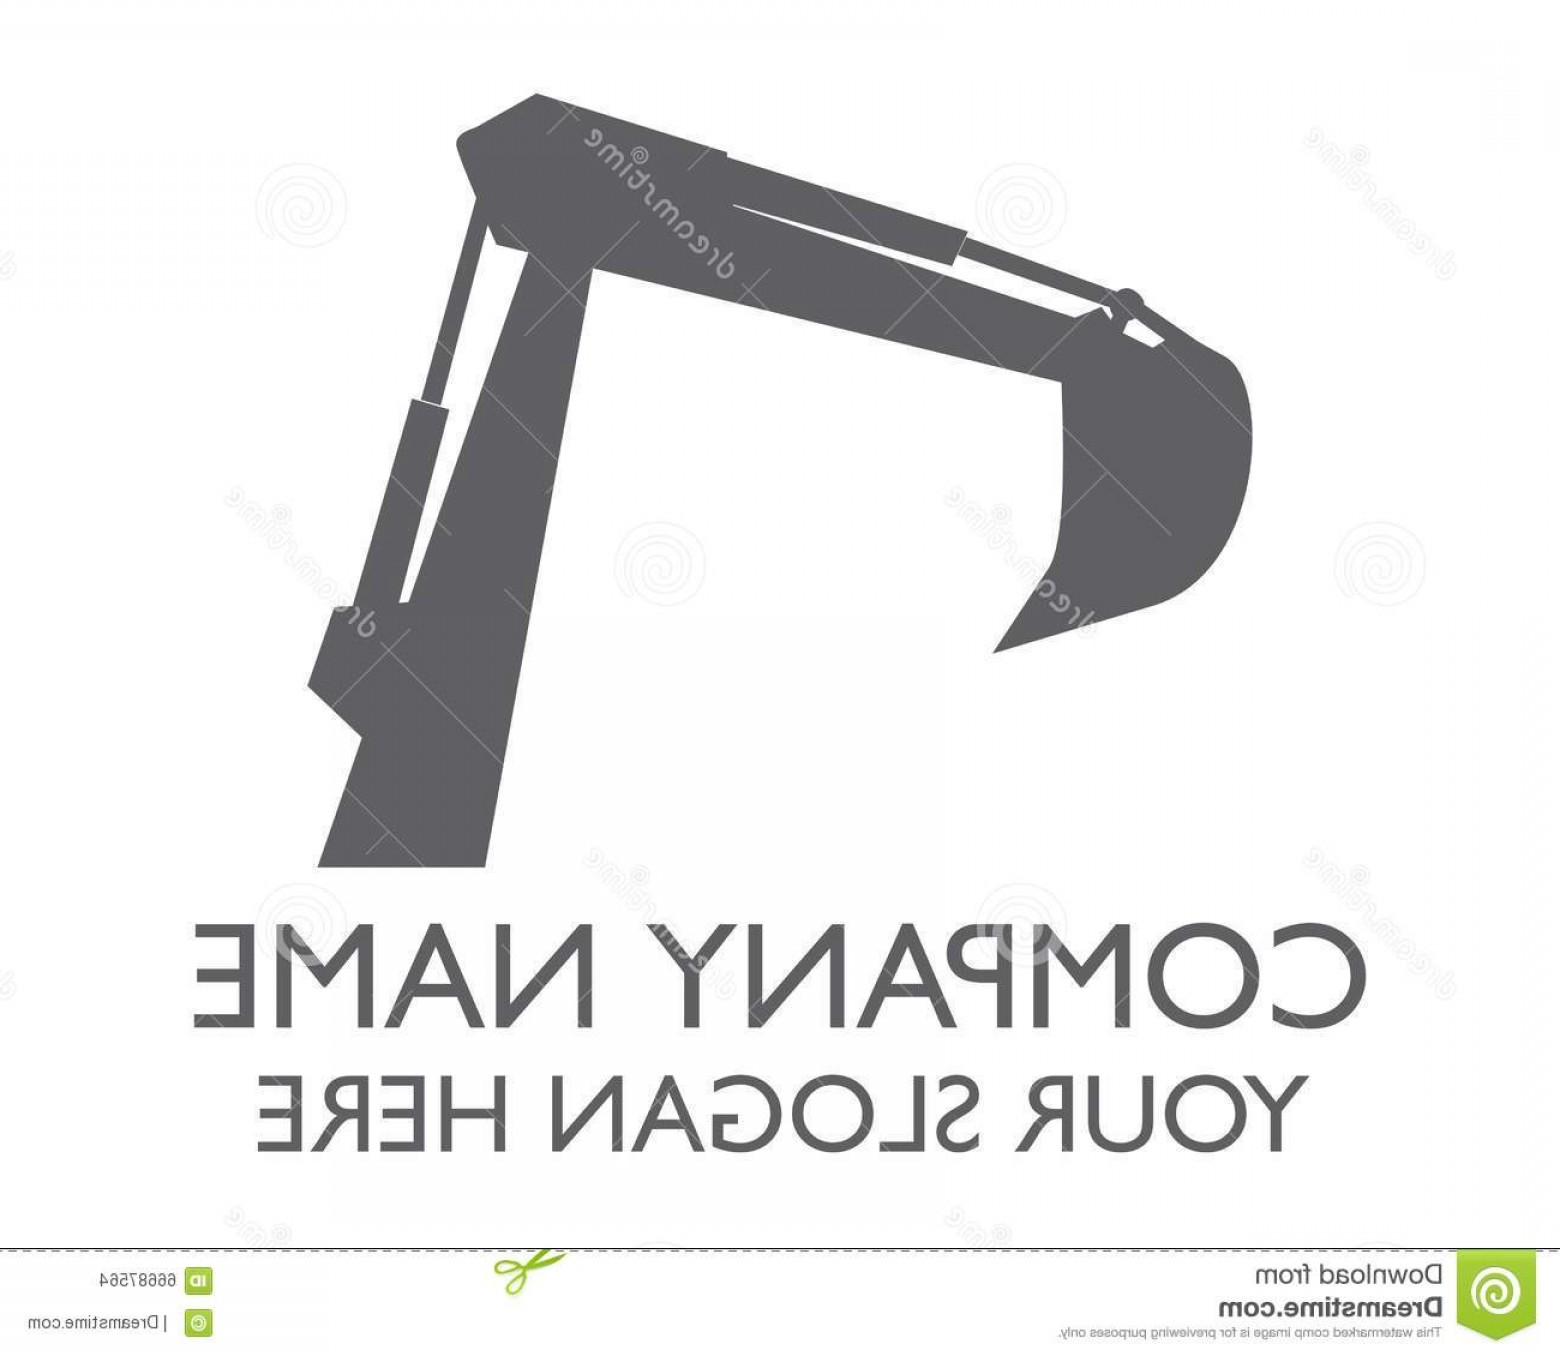 Construction Logos Vector Black And White: Stock Illustration Vehicle Construction Logo Good Your Company Image